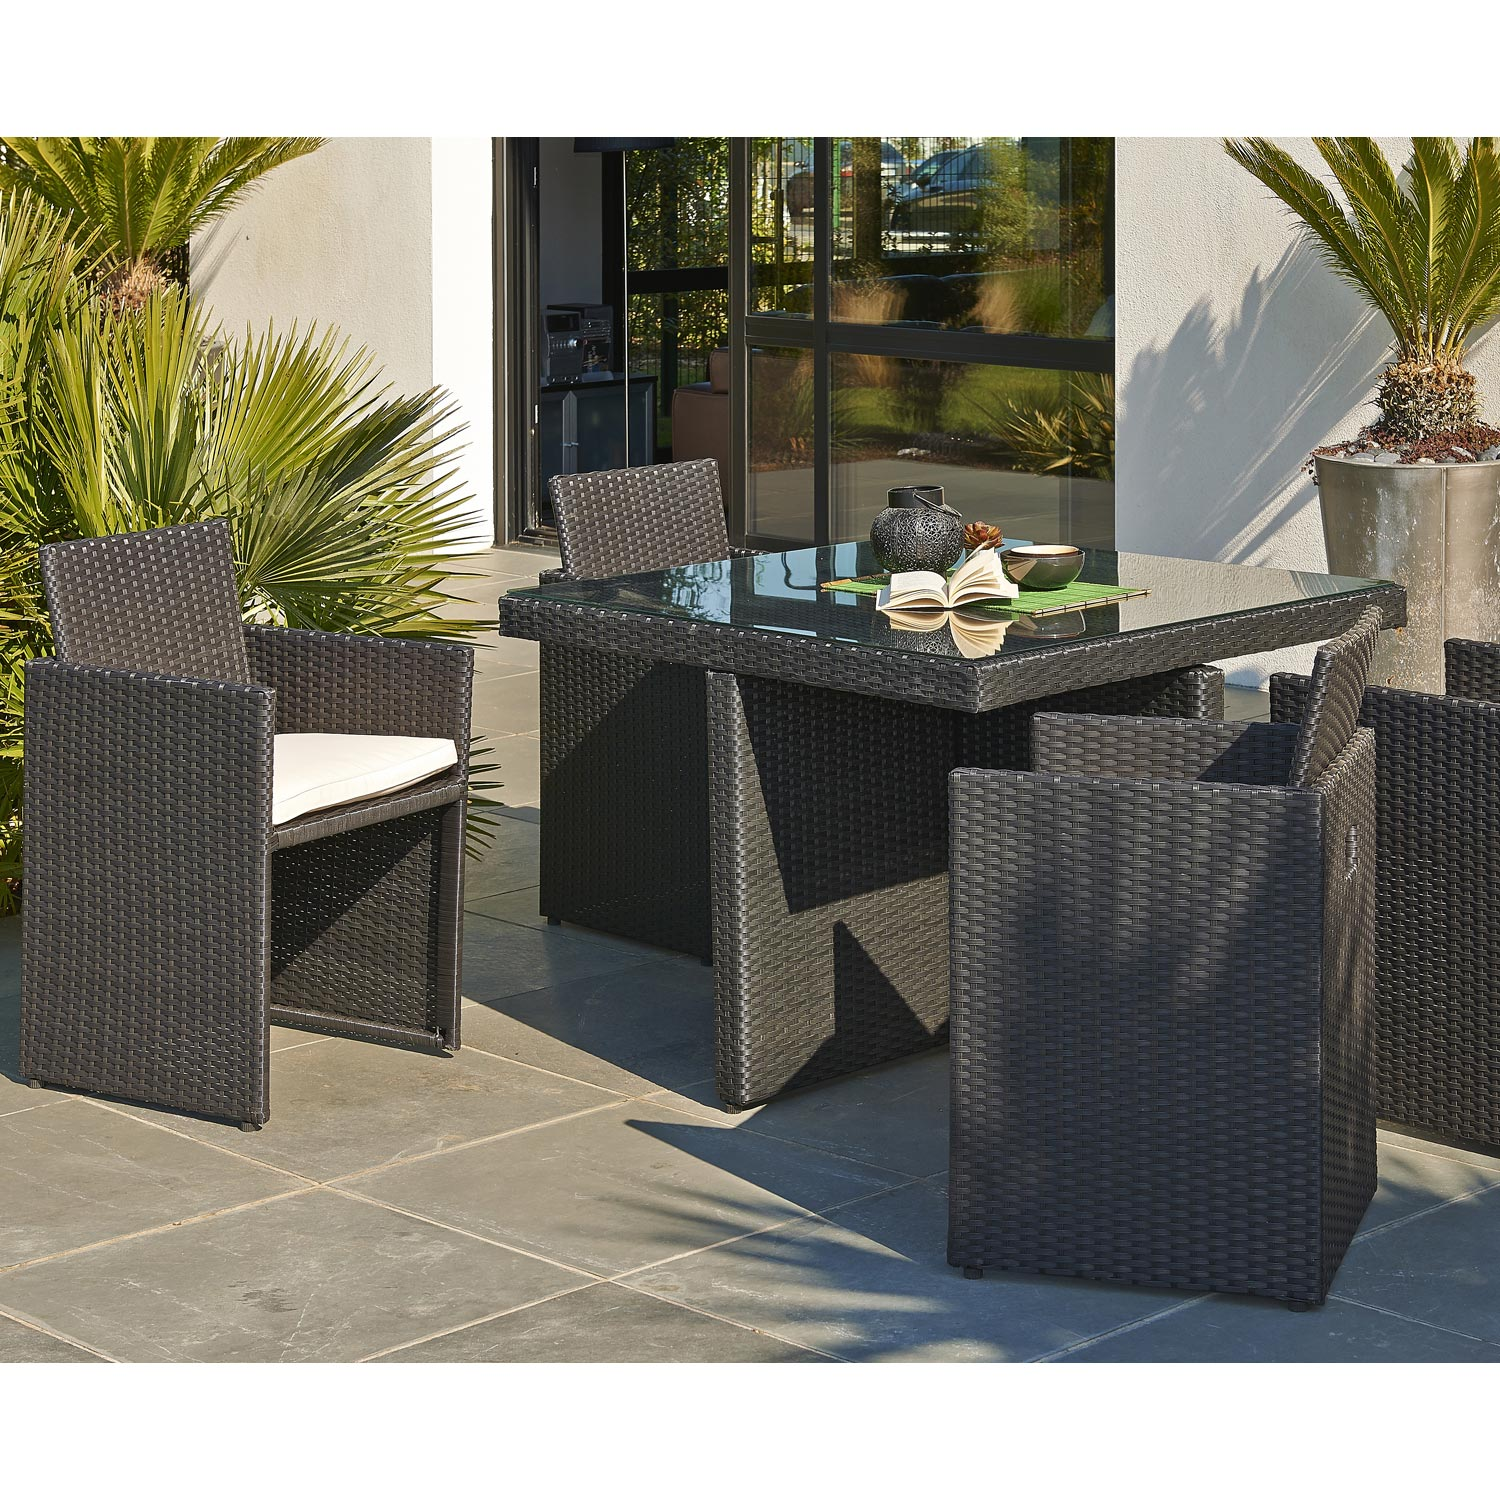 salon de jardin encastrable r sine tress e noir 1 table 4 fauteuils leroy merlin. Black Bedroom Furniture Sets. Home Design Ideas